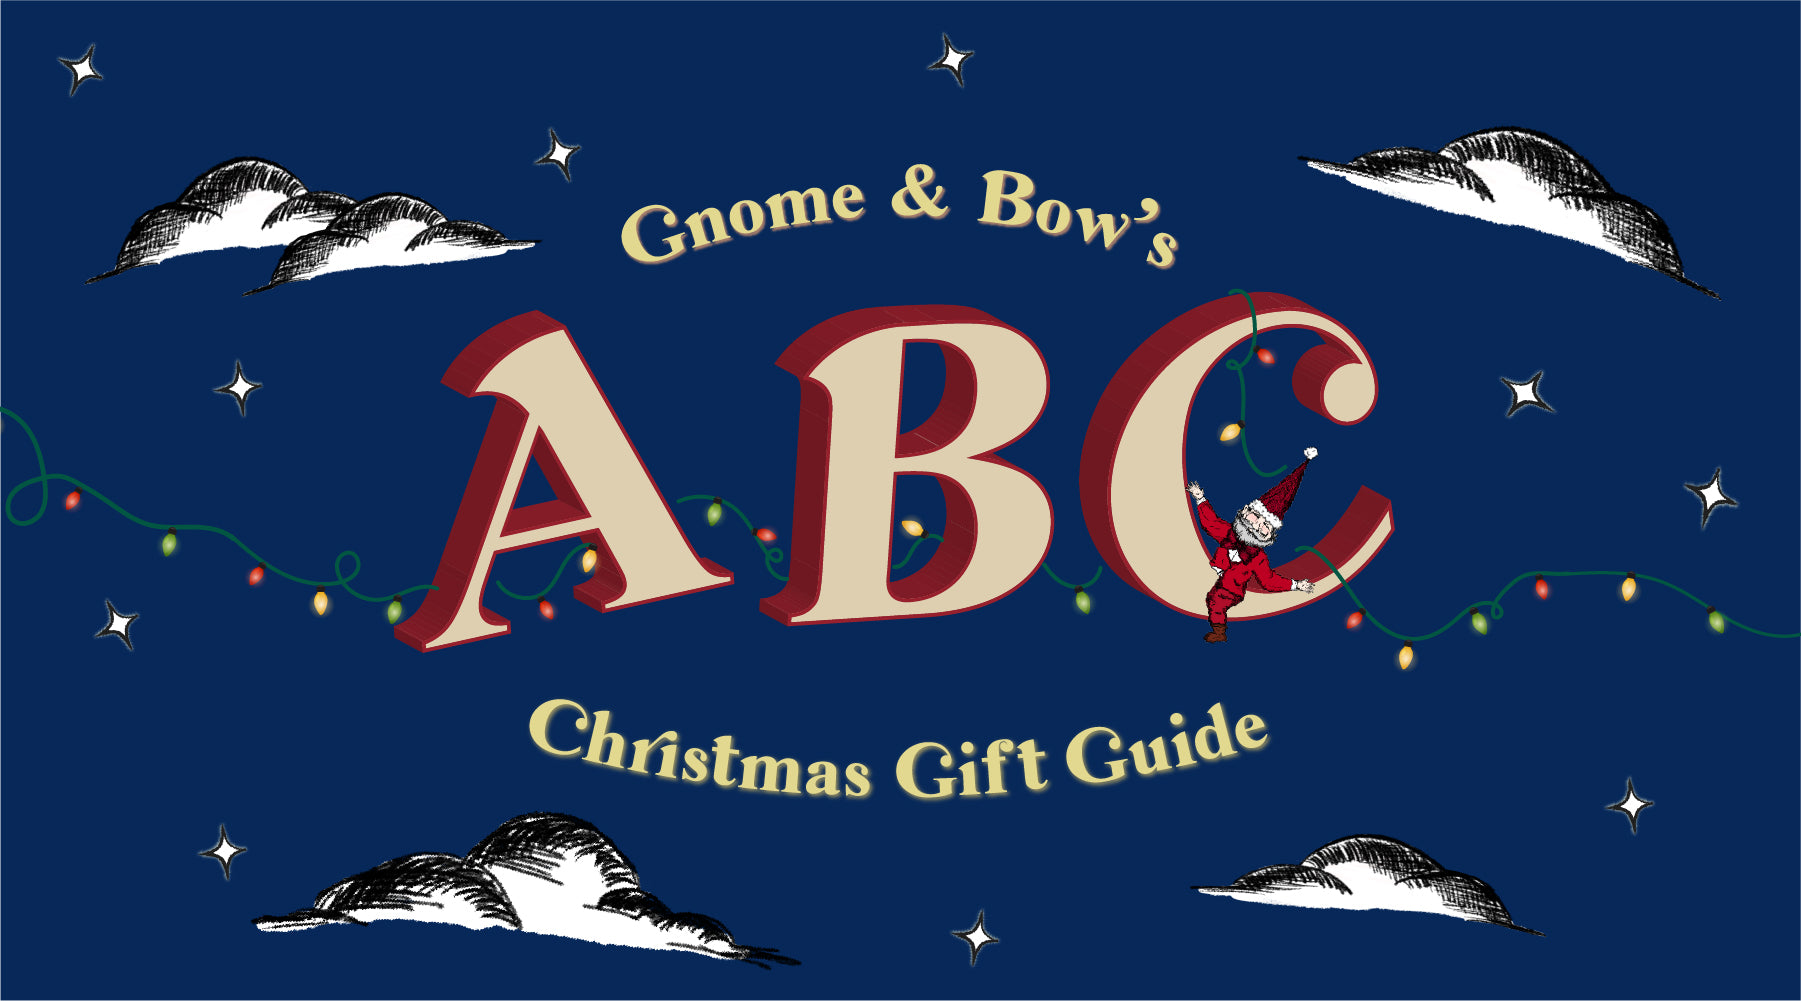 The 'ABC' Christmas Gift Guide 2020